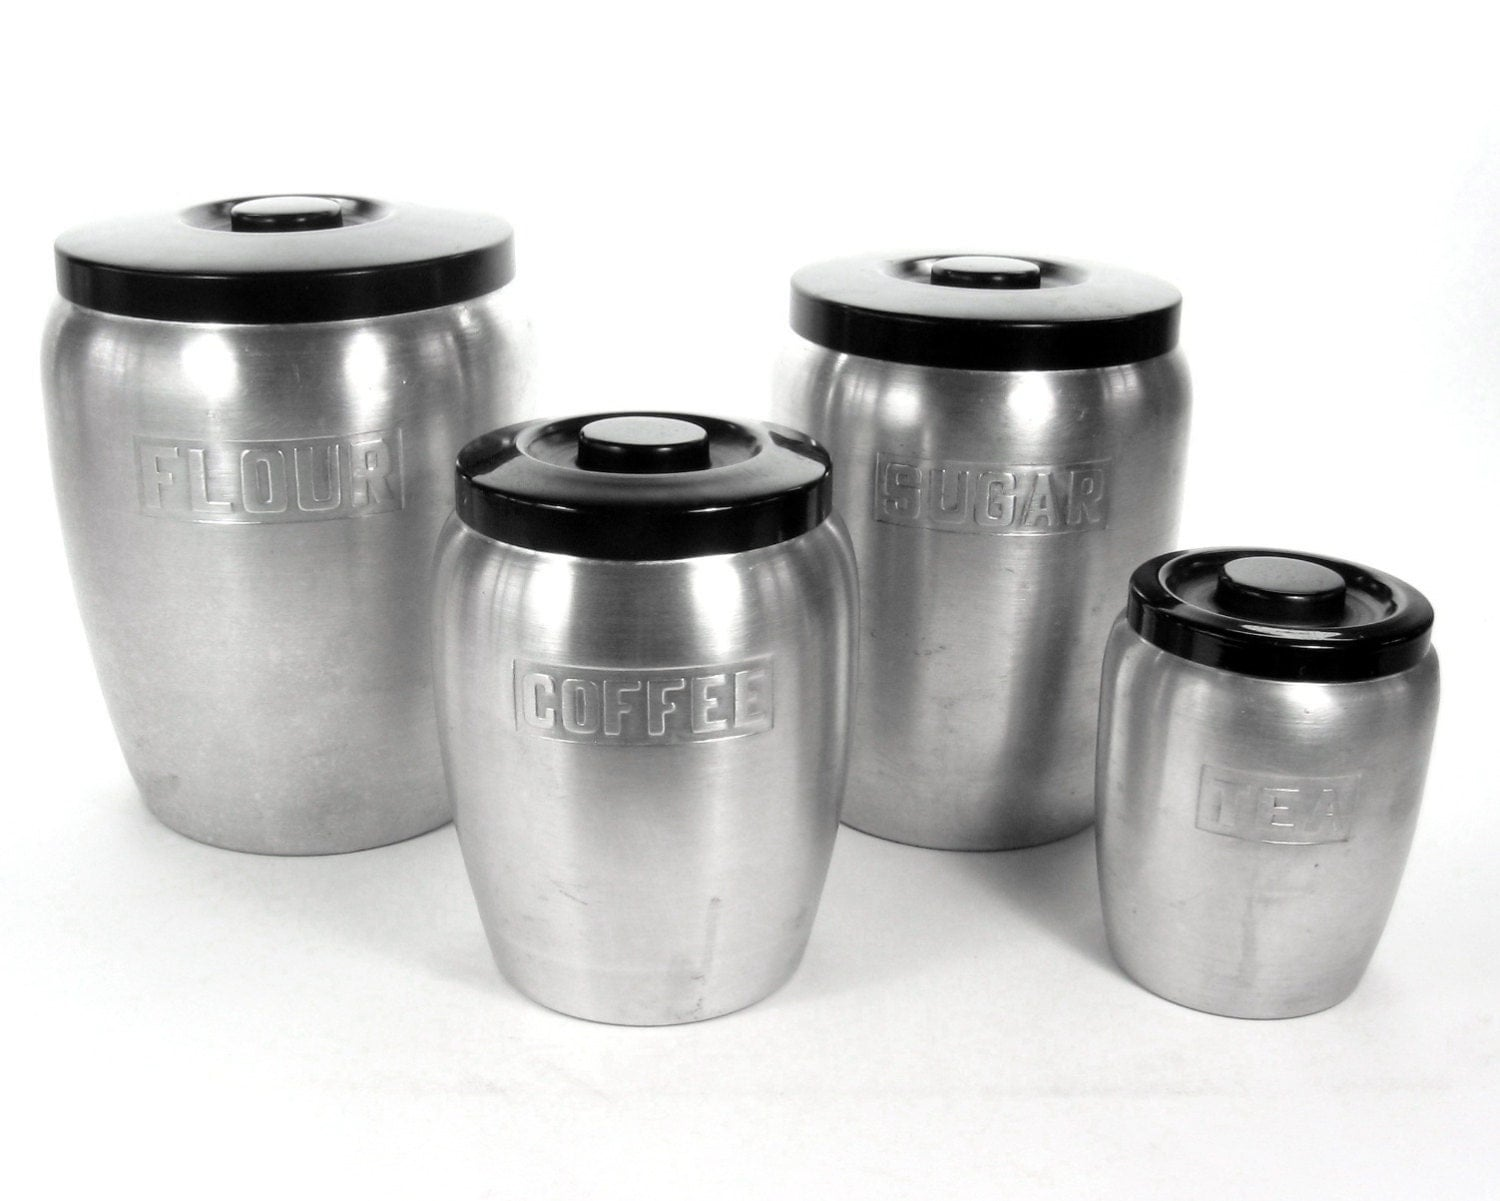 Vintage kitchen canister set aluminum 1940s kitchen decor for Kitchen set aluminium